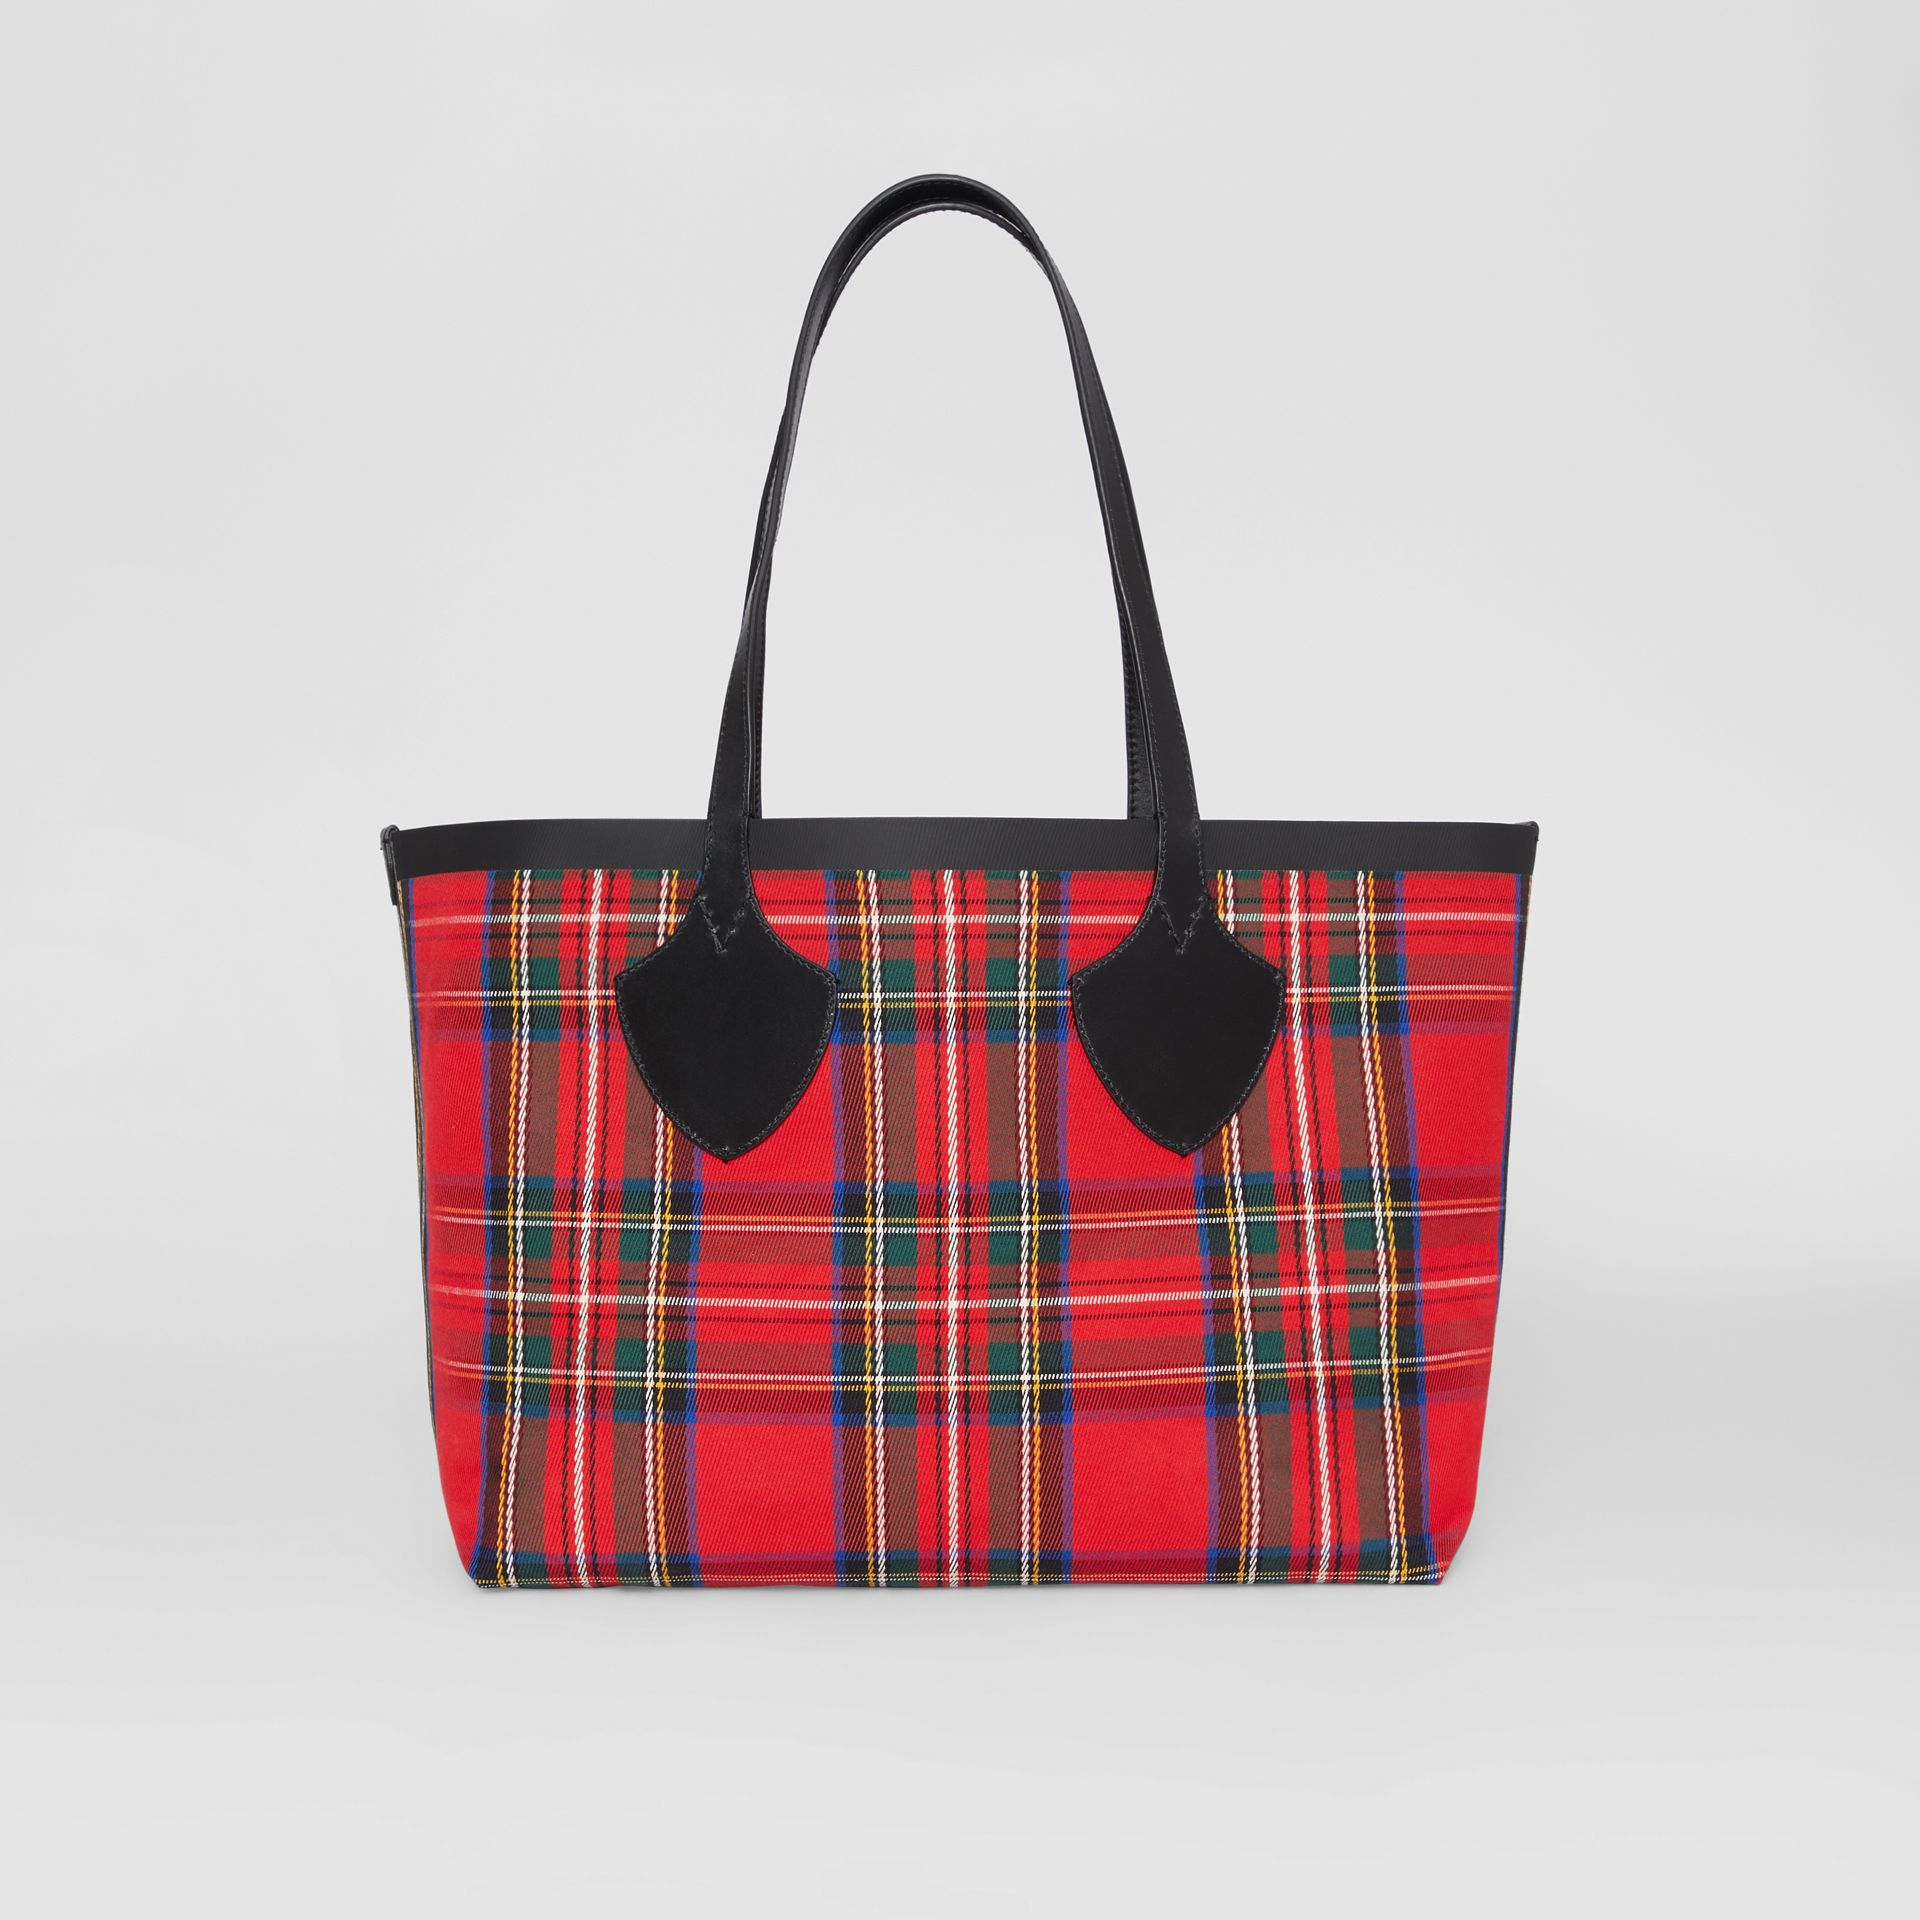 Sac tote The Giant moyen en Vintage check (Jaune Antique/rouge Vif) | Burberry - photo de la galerie 9